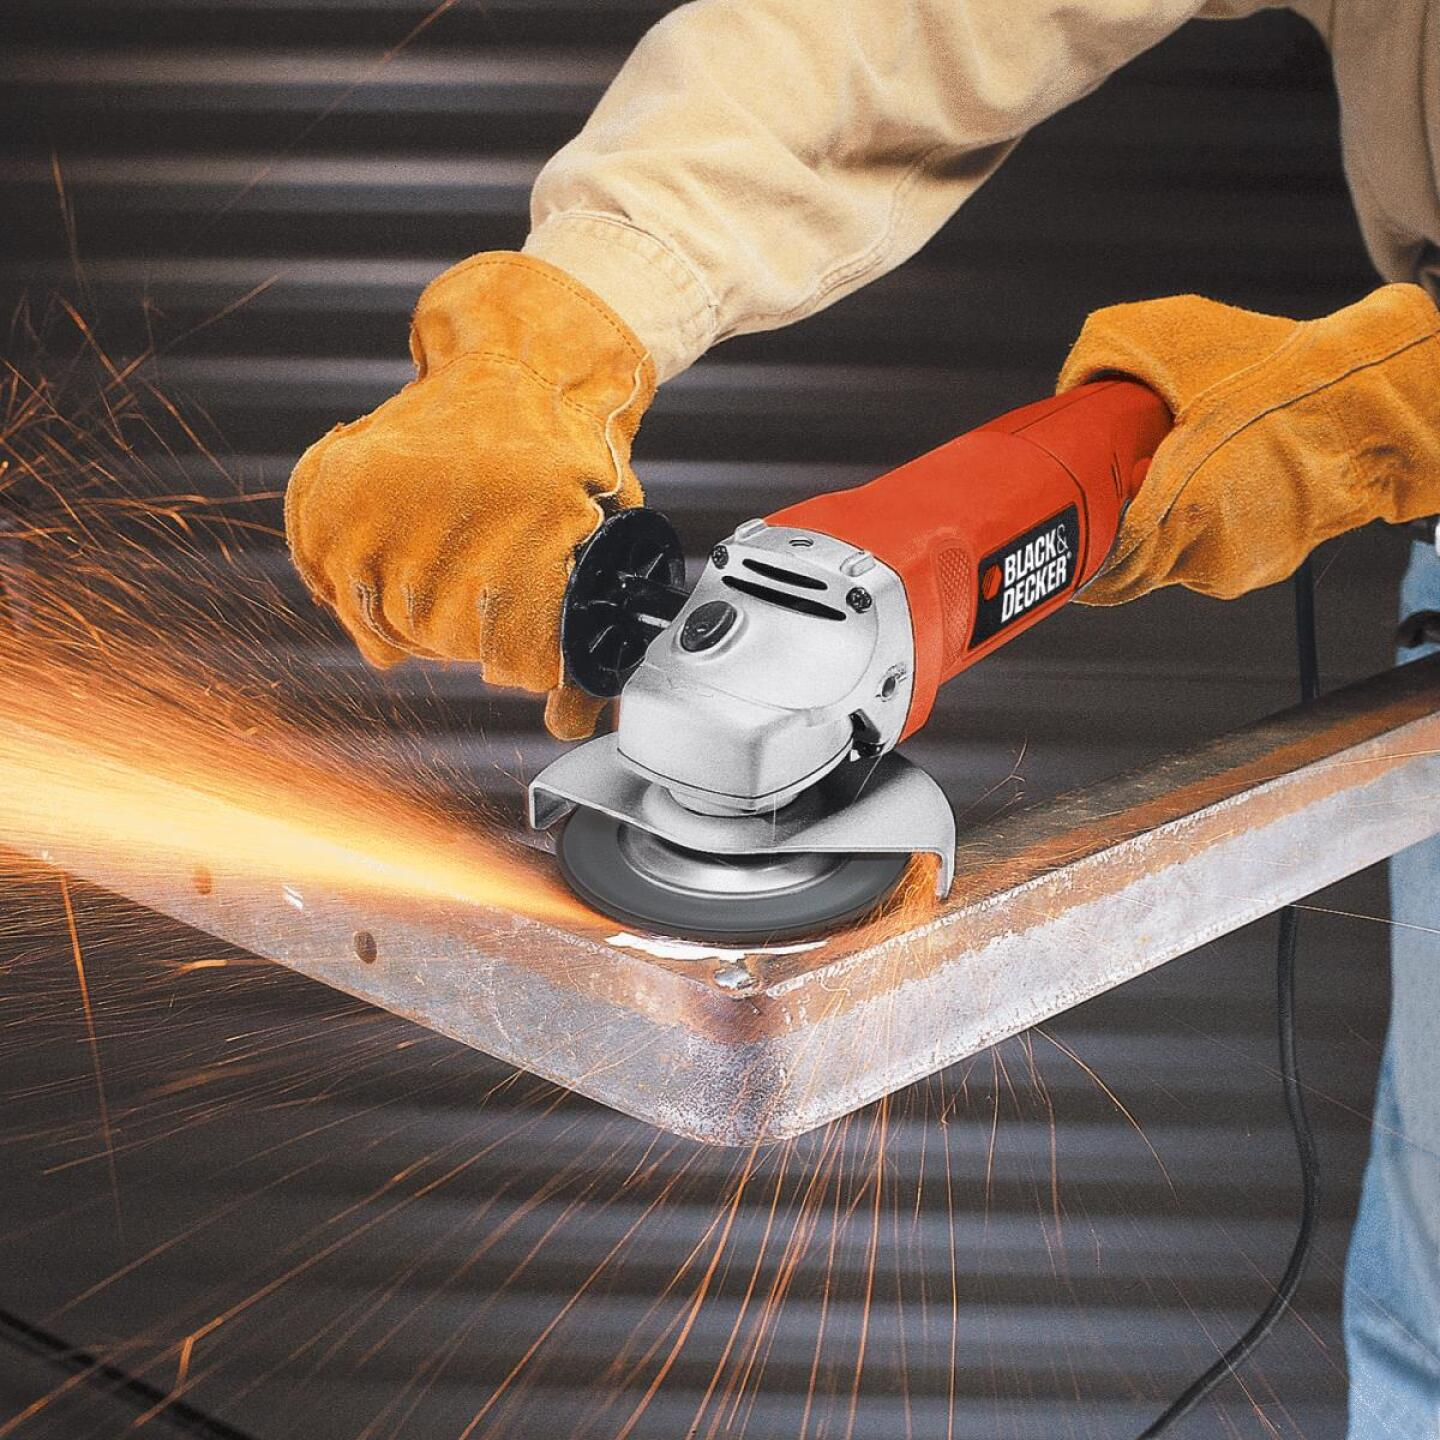 Black & Decker 4-1/2 In. 8.5-Amp Angle Grinder Image 3